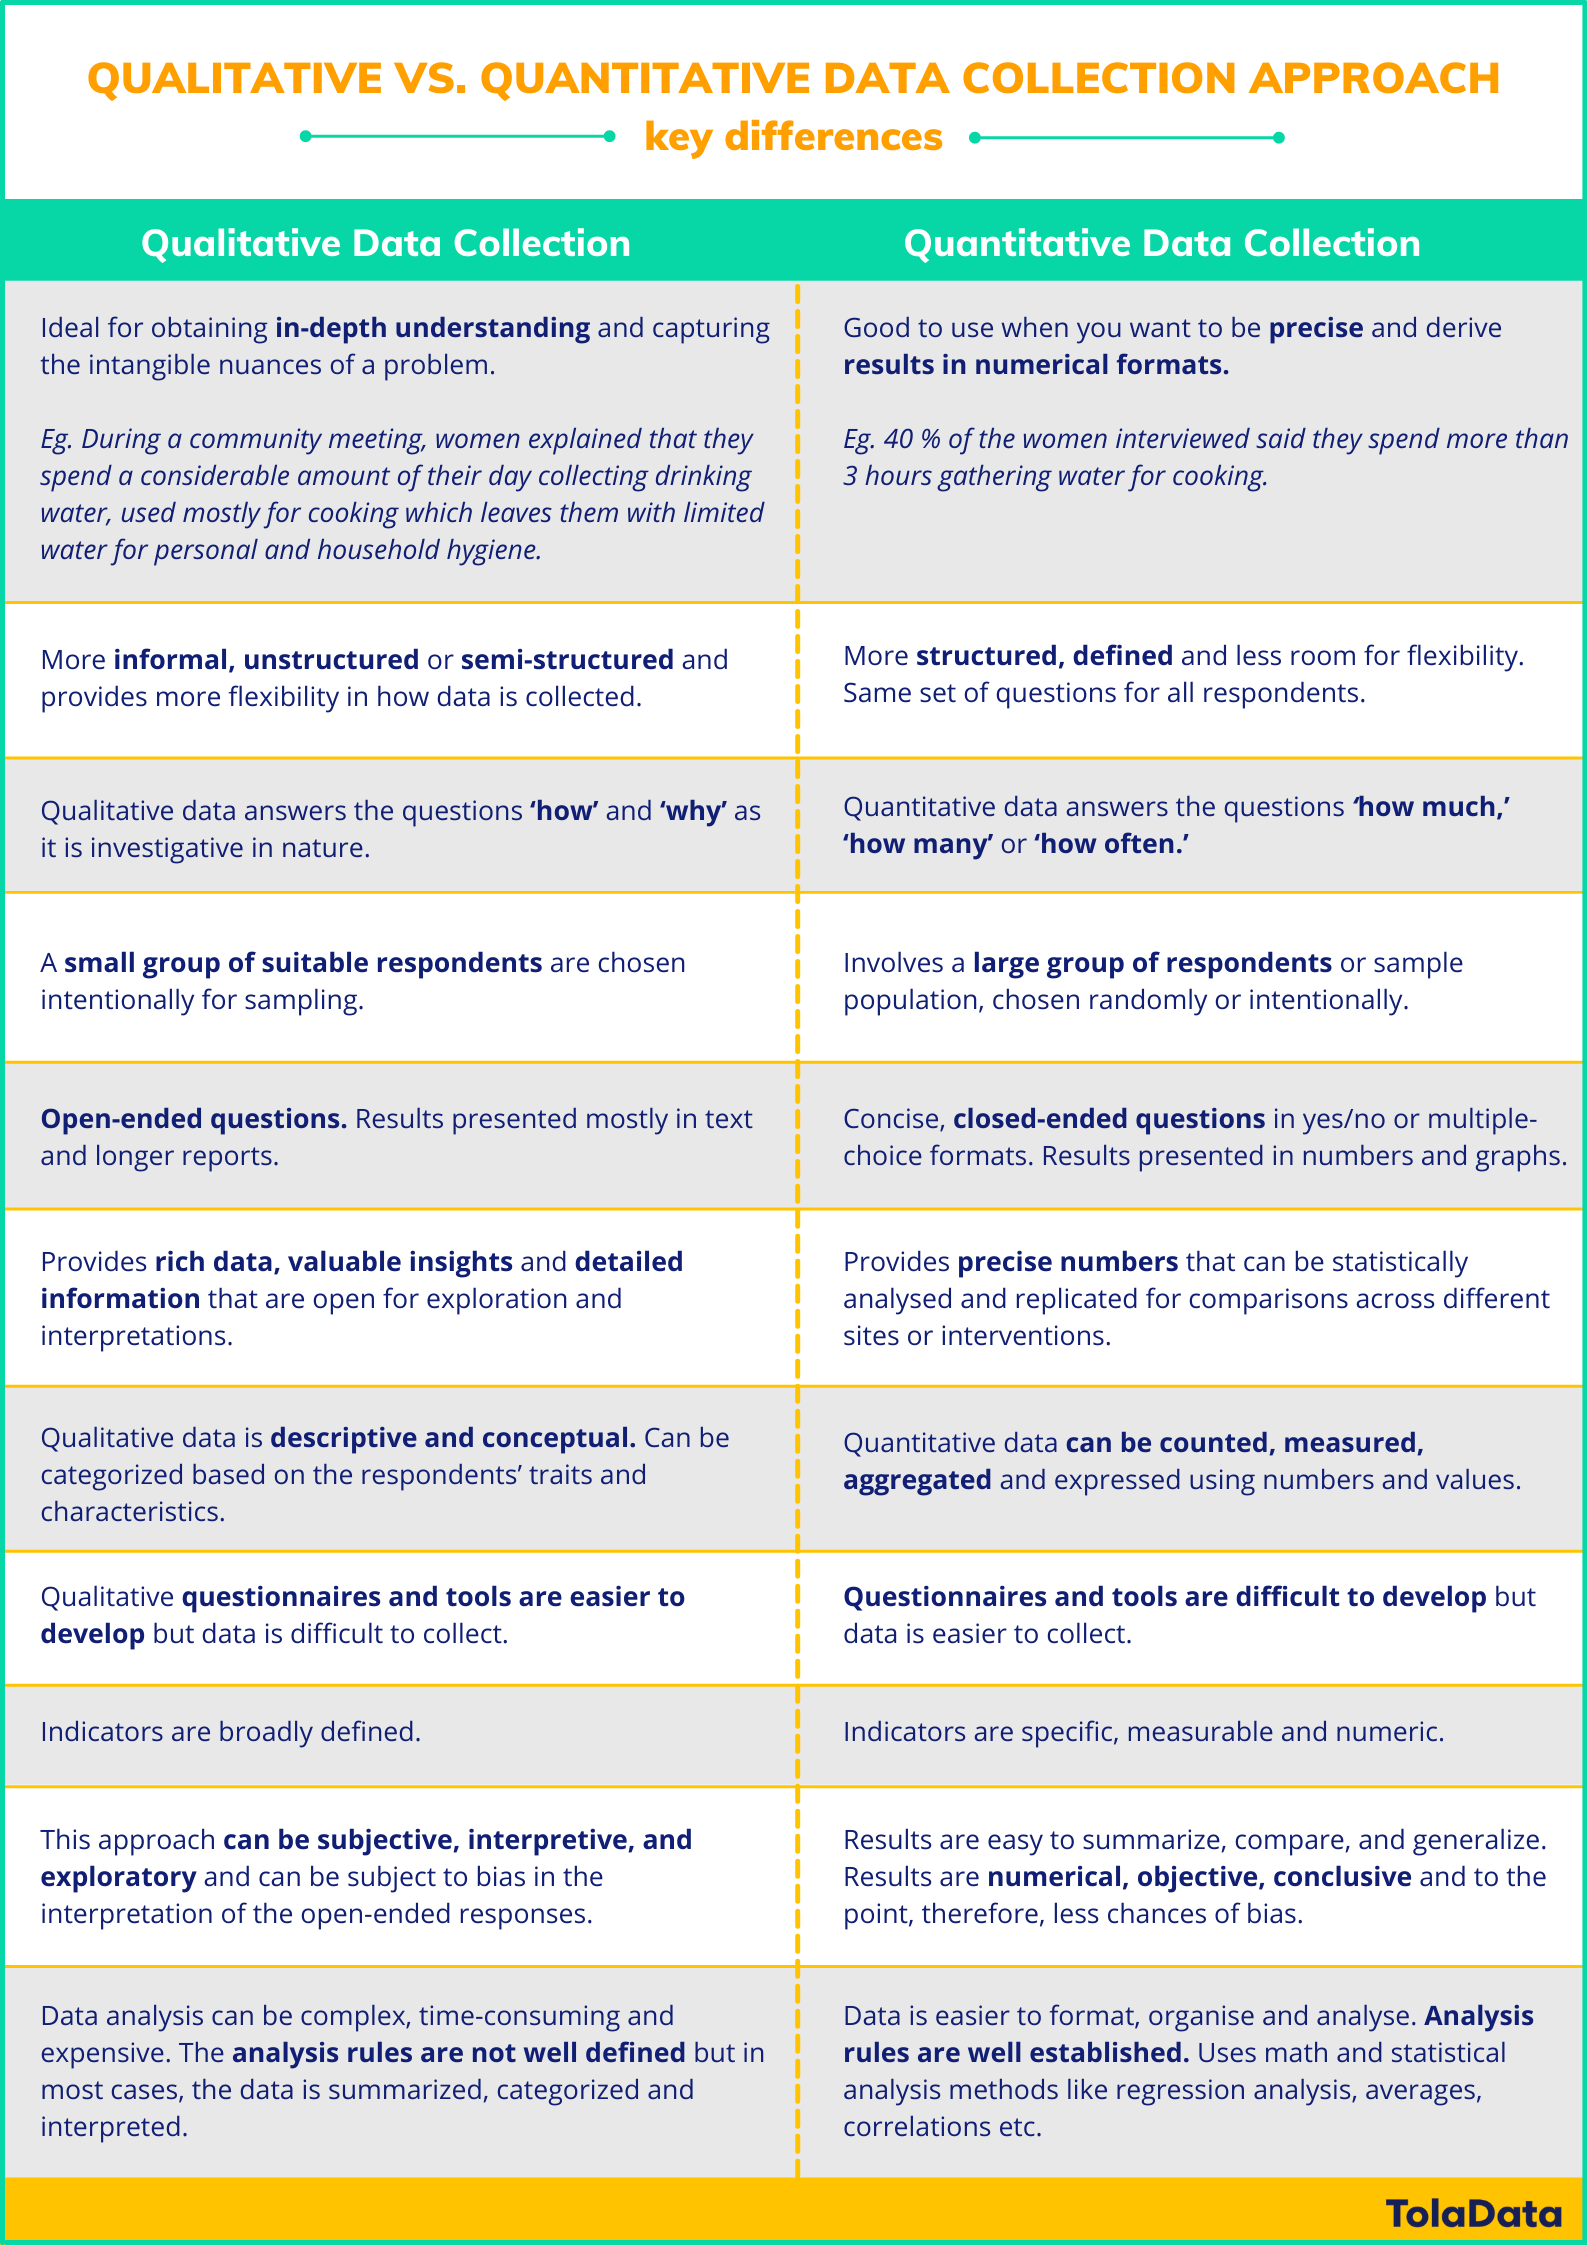 Differences between qualitative and quantitative data collection approach